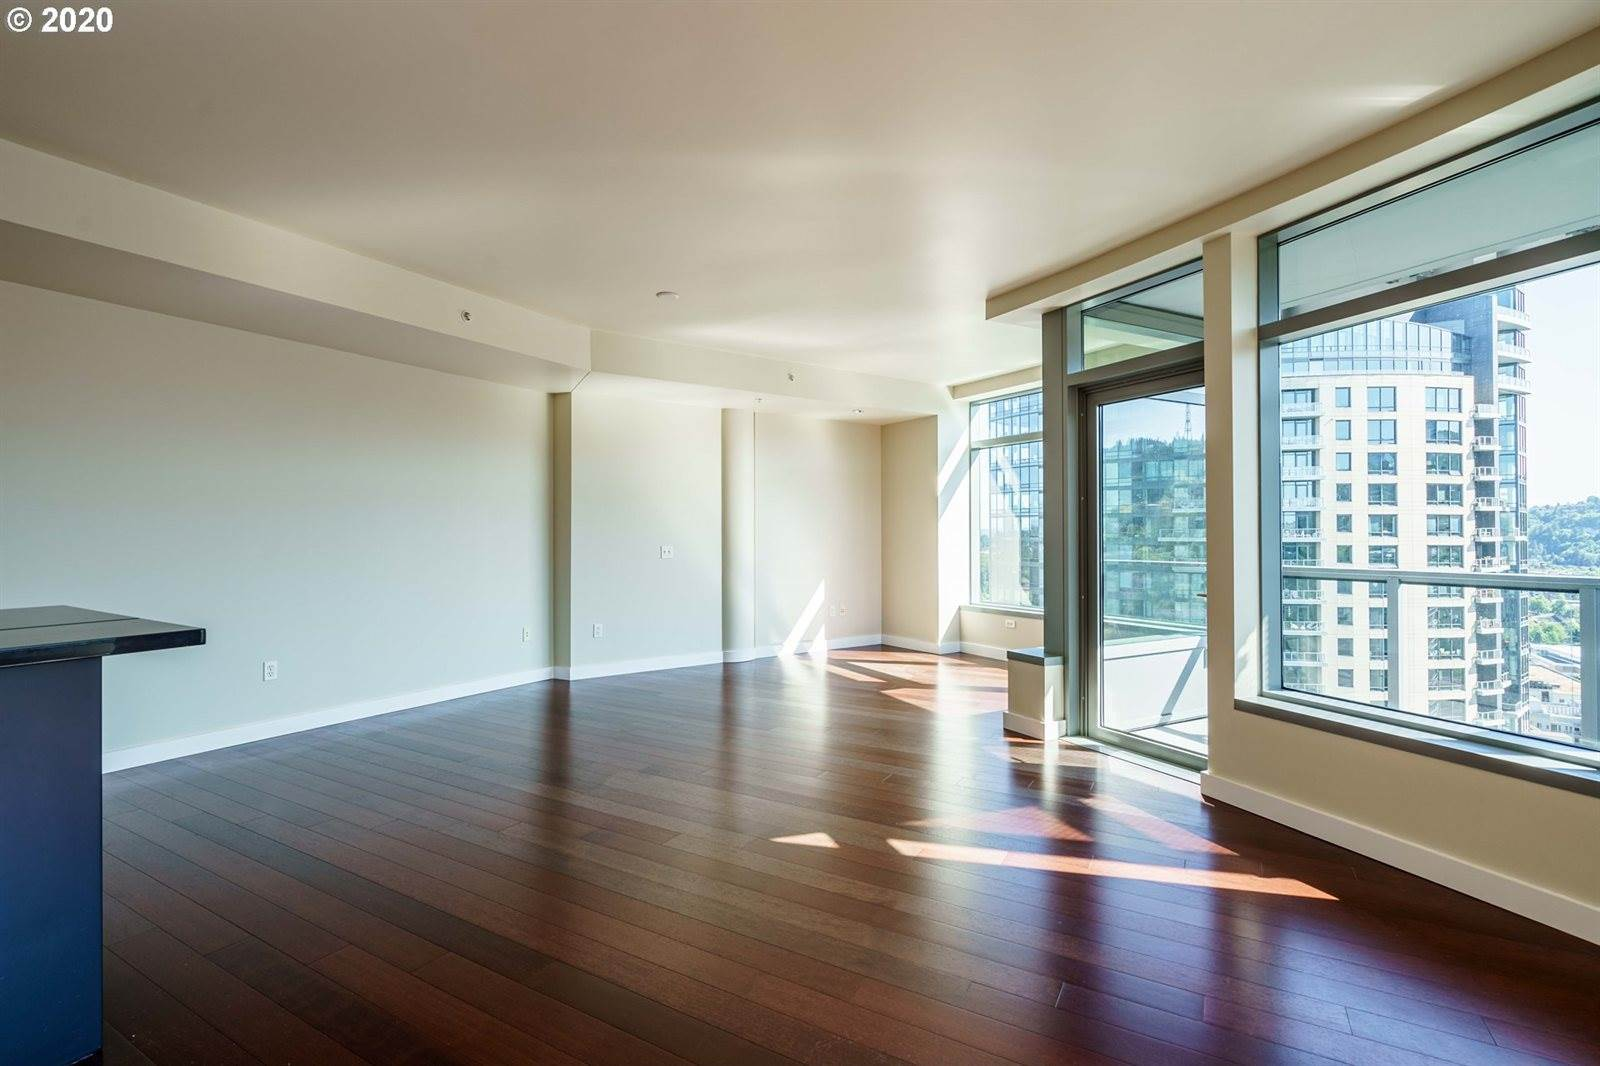 3601 South River Pkwy, #2418, Portland, OR 97239